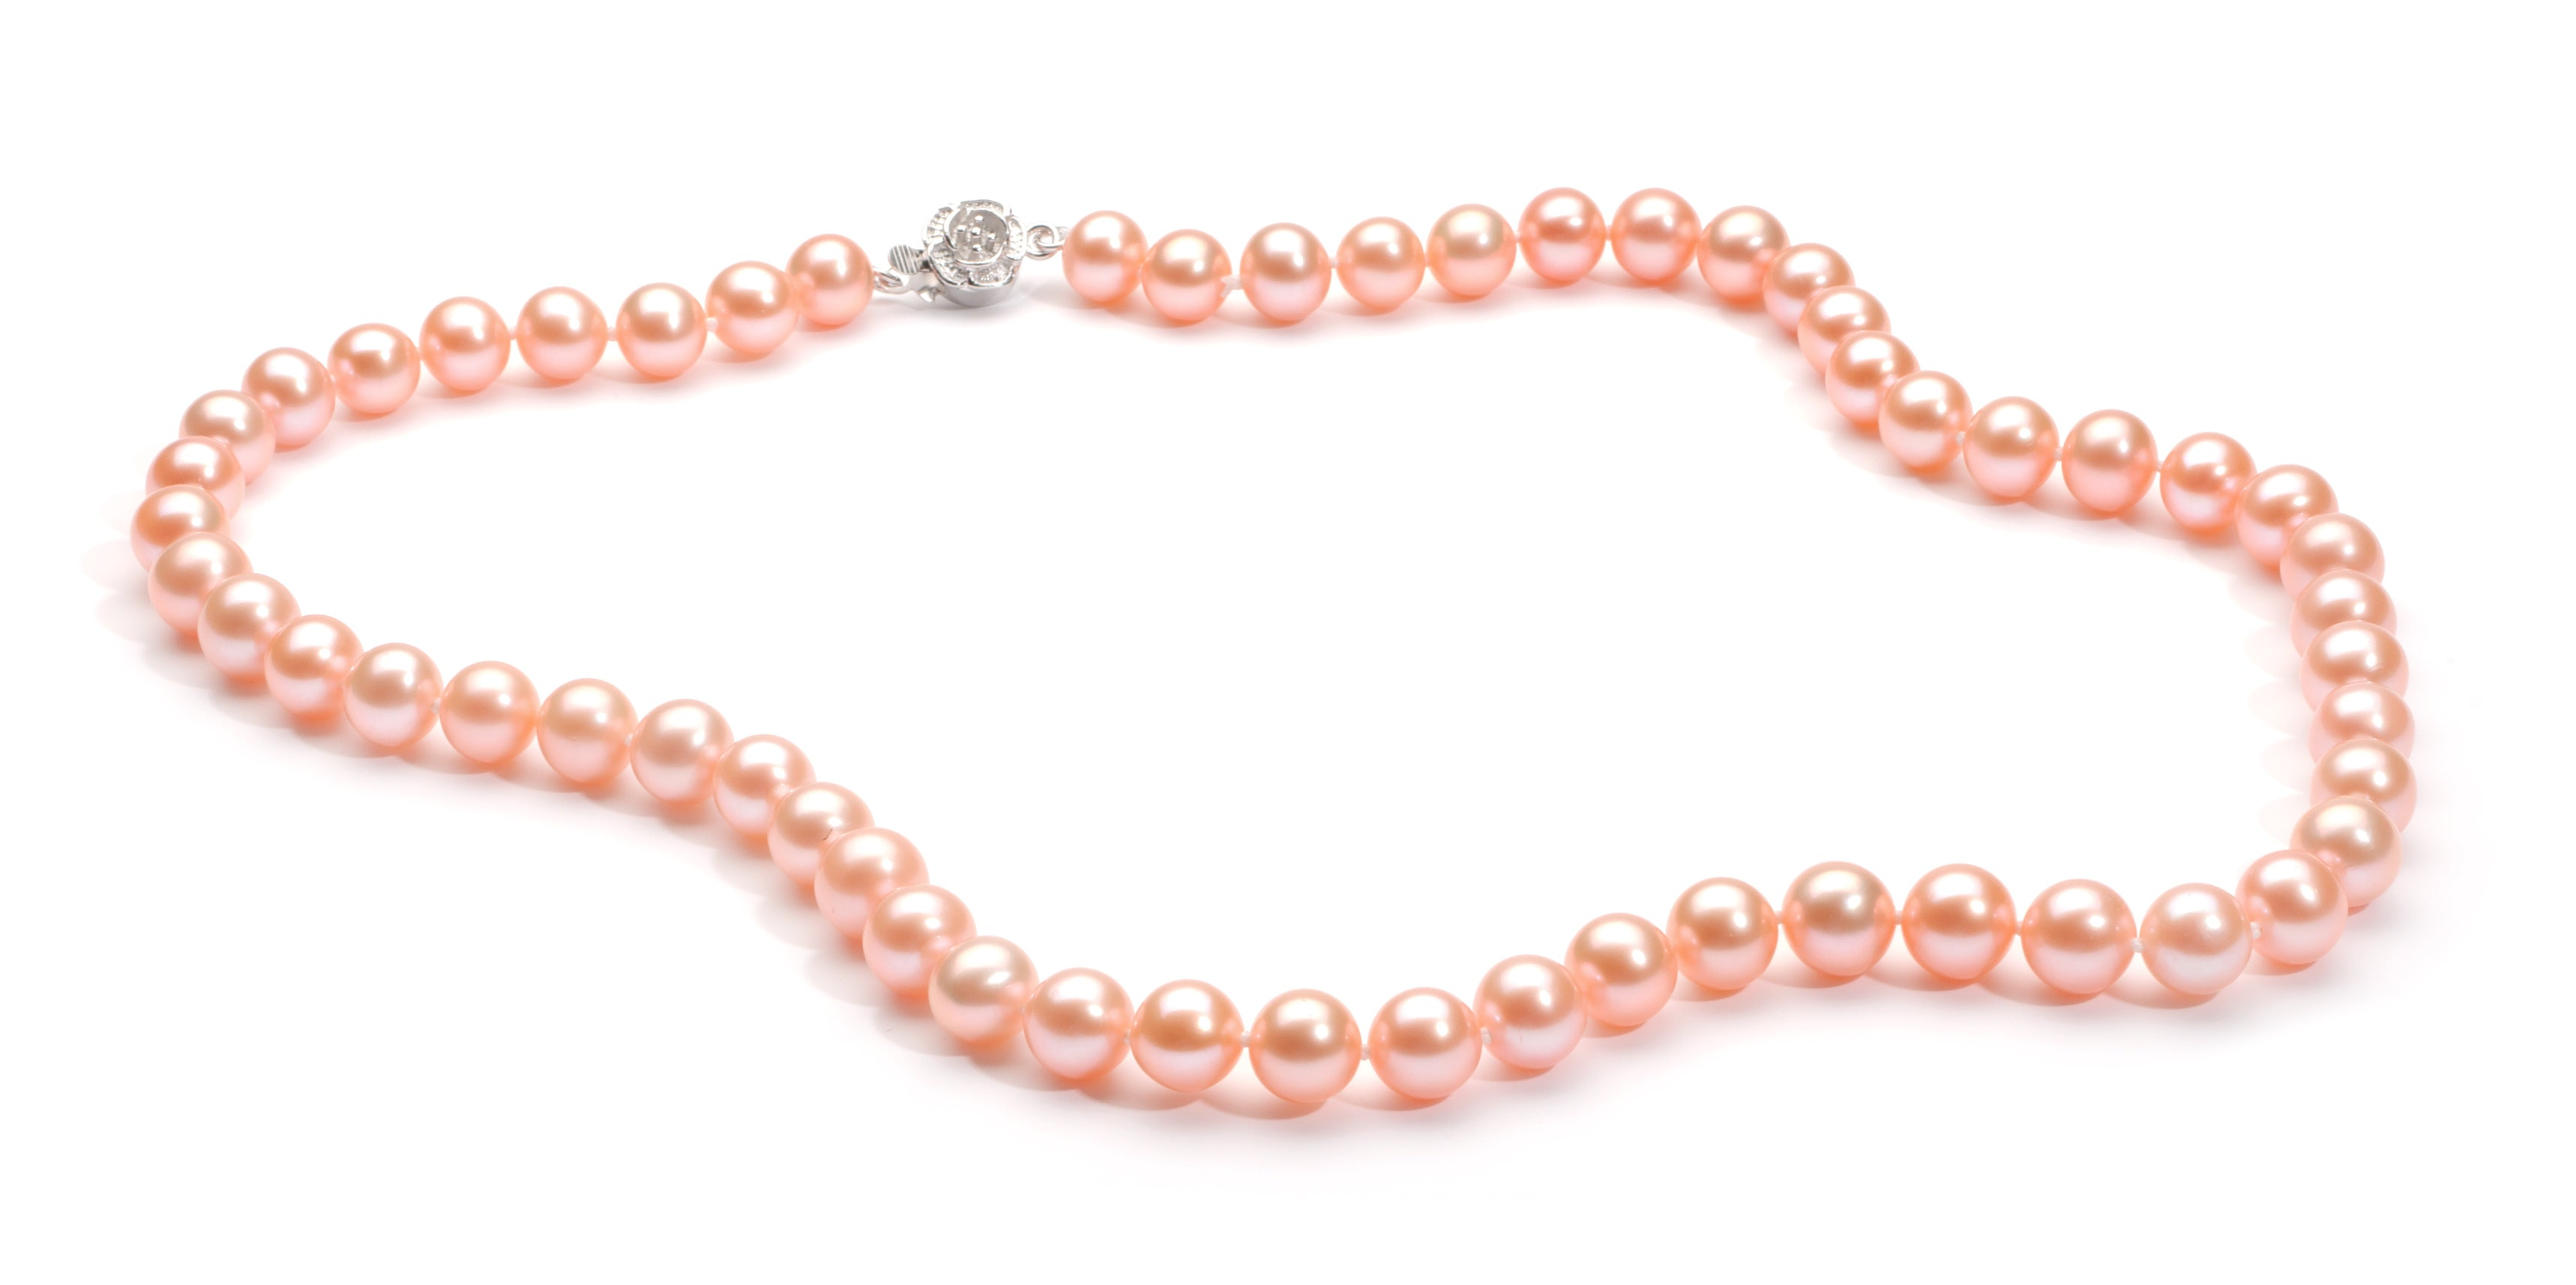 8.0-9.0 mm Pink Freshwater Pearl Necklace